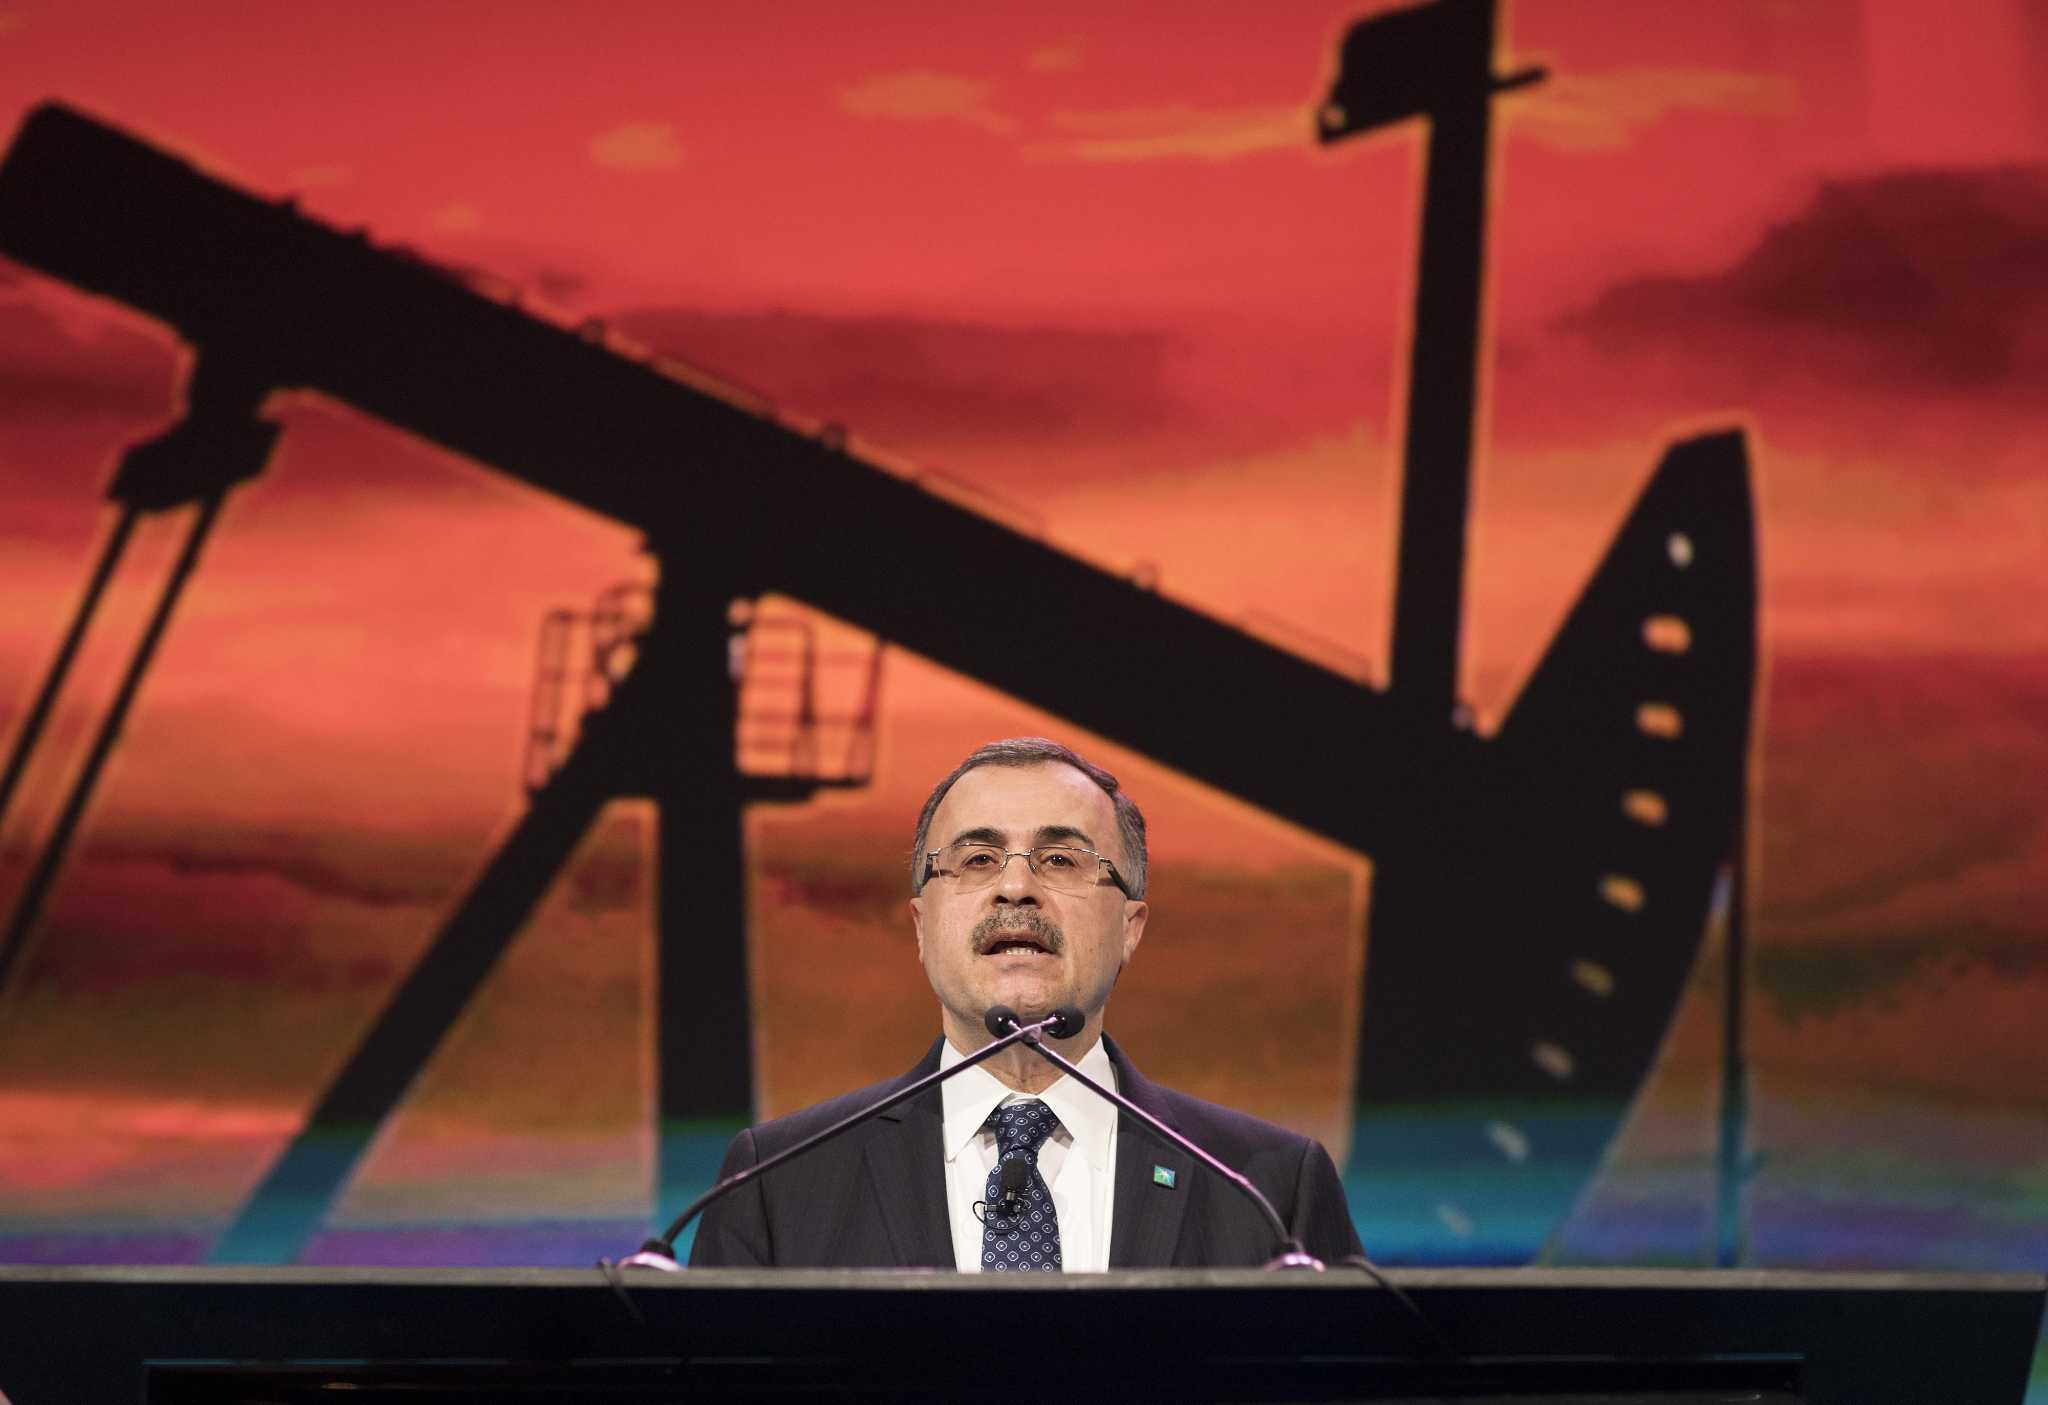 Saudi Arabia potentially eyeing LNG investment